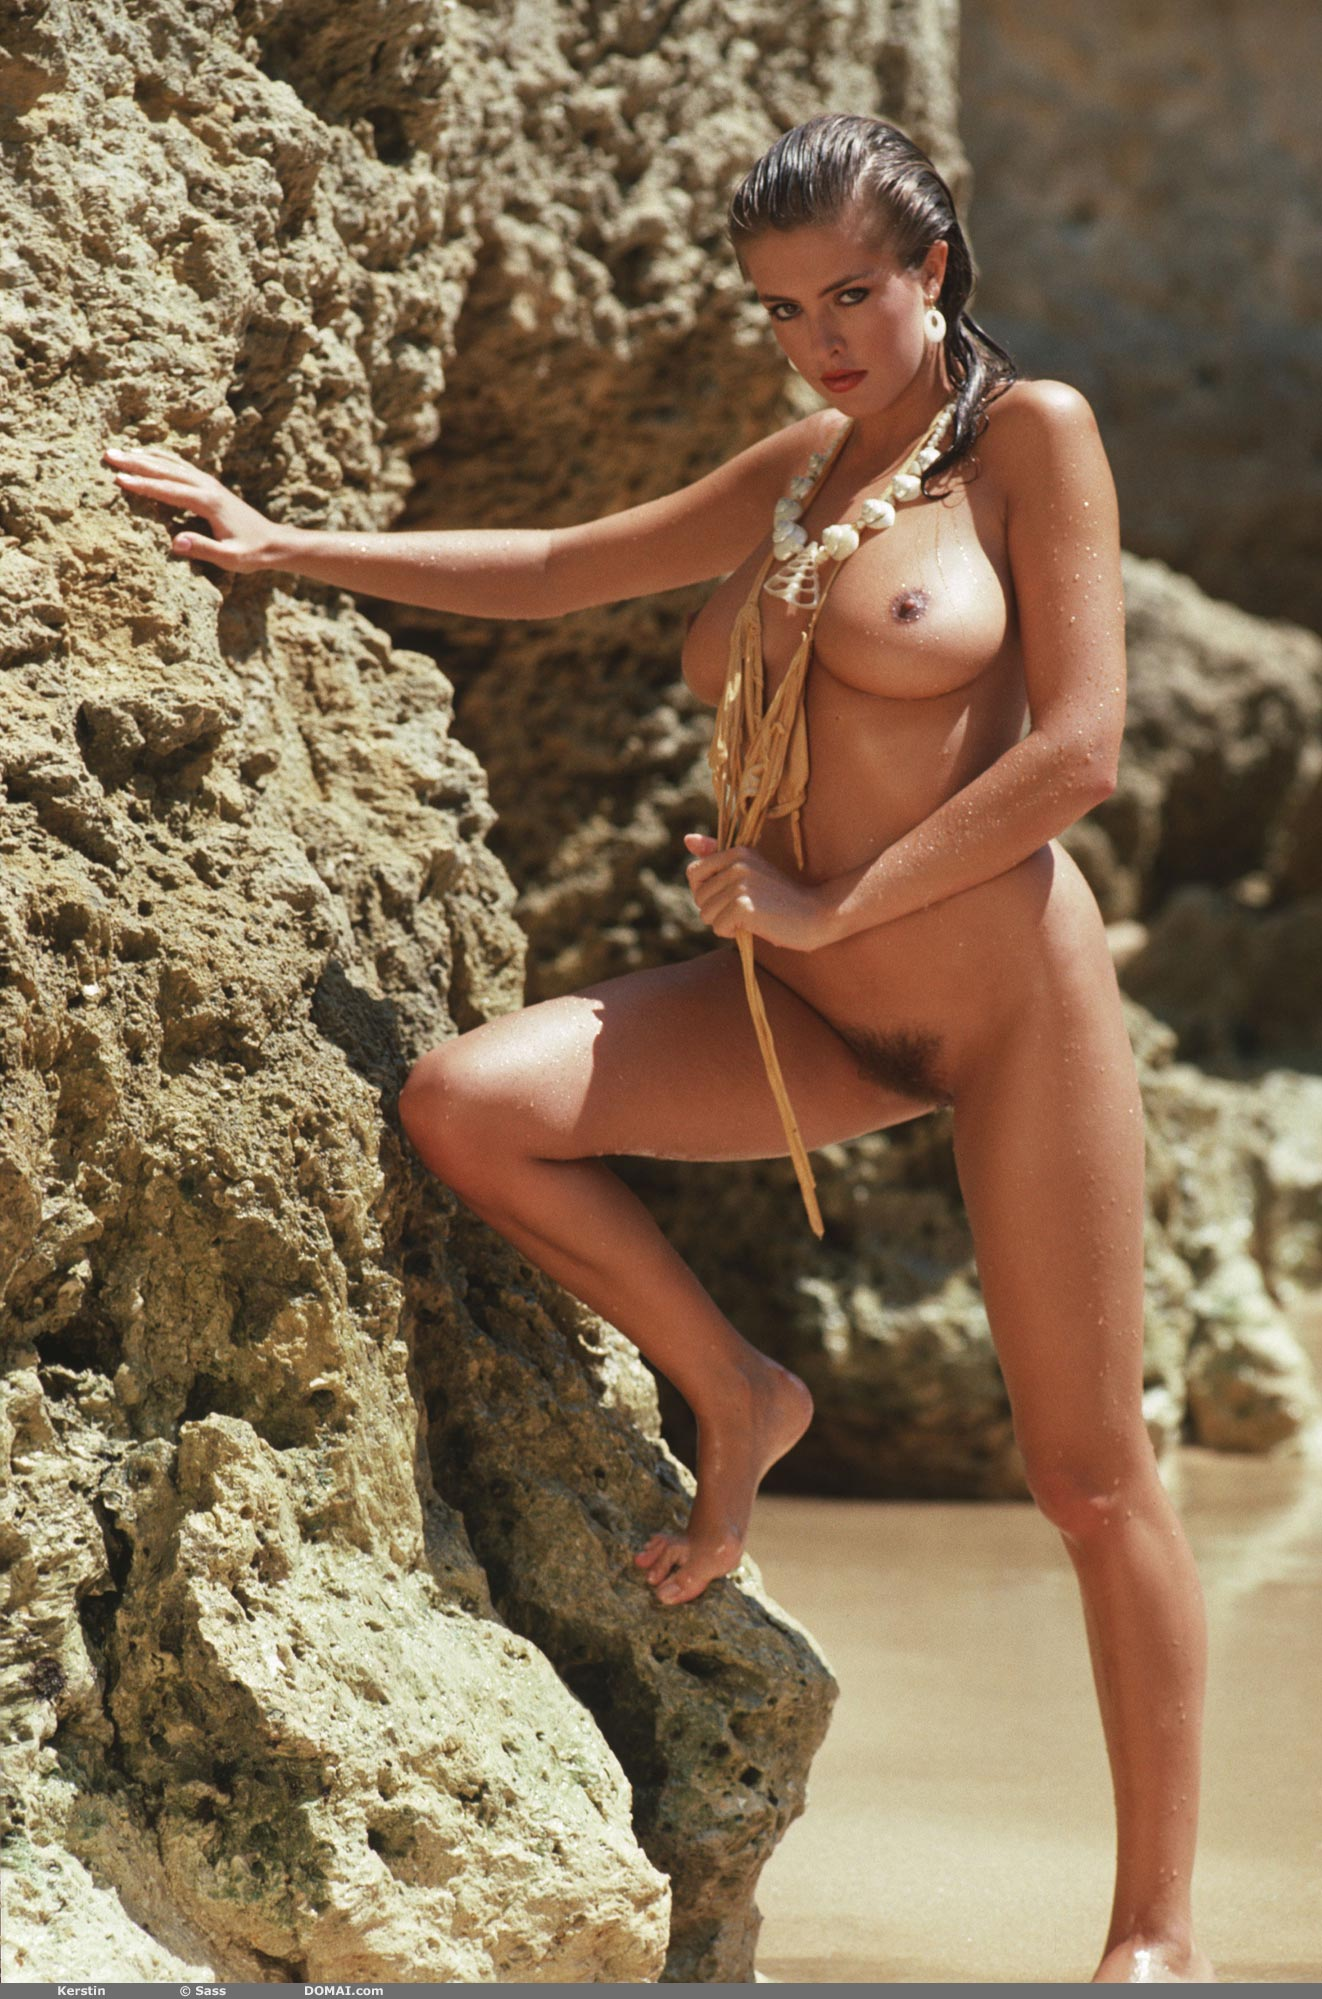 Hot Beach Nude Picture Pics